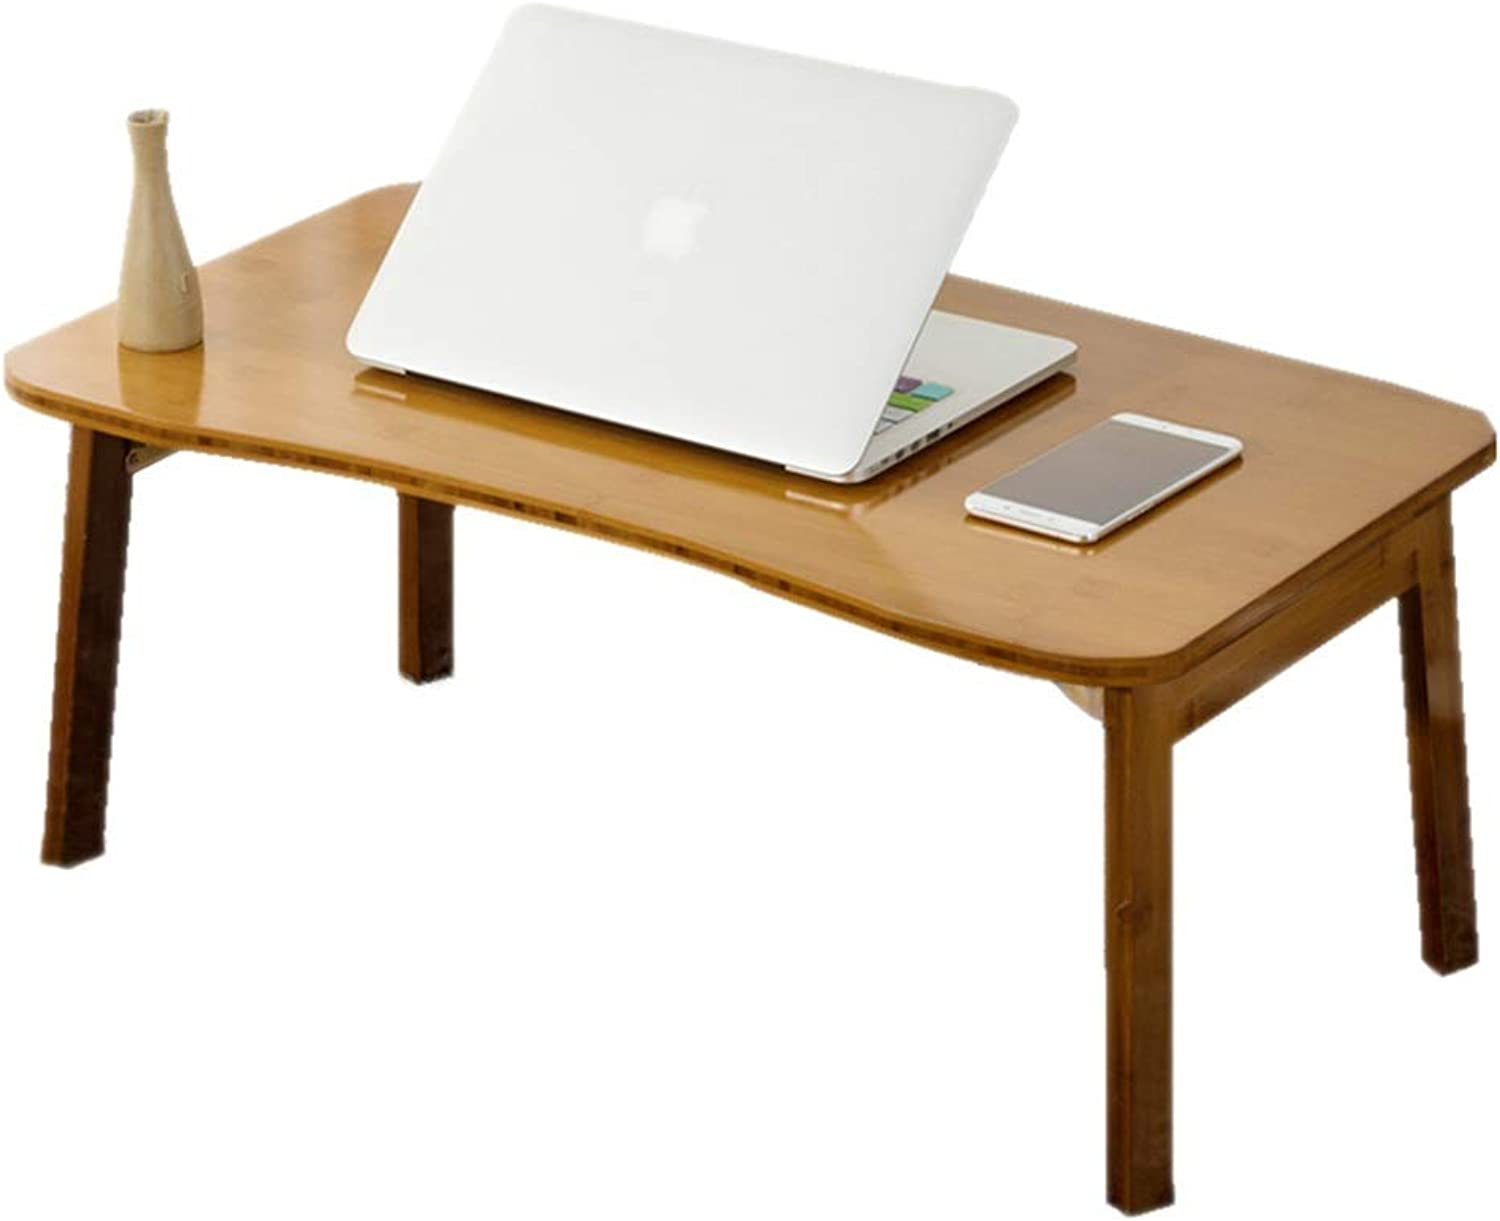 Standing Desk Congreener Wooden Coffee Table Laptop Table Foldable Table Simple Lazy Dormitory Study Desk (color   Brown, Size   70cm42cm31cm)